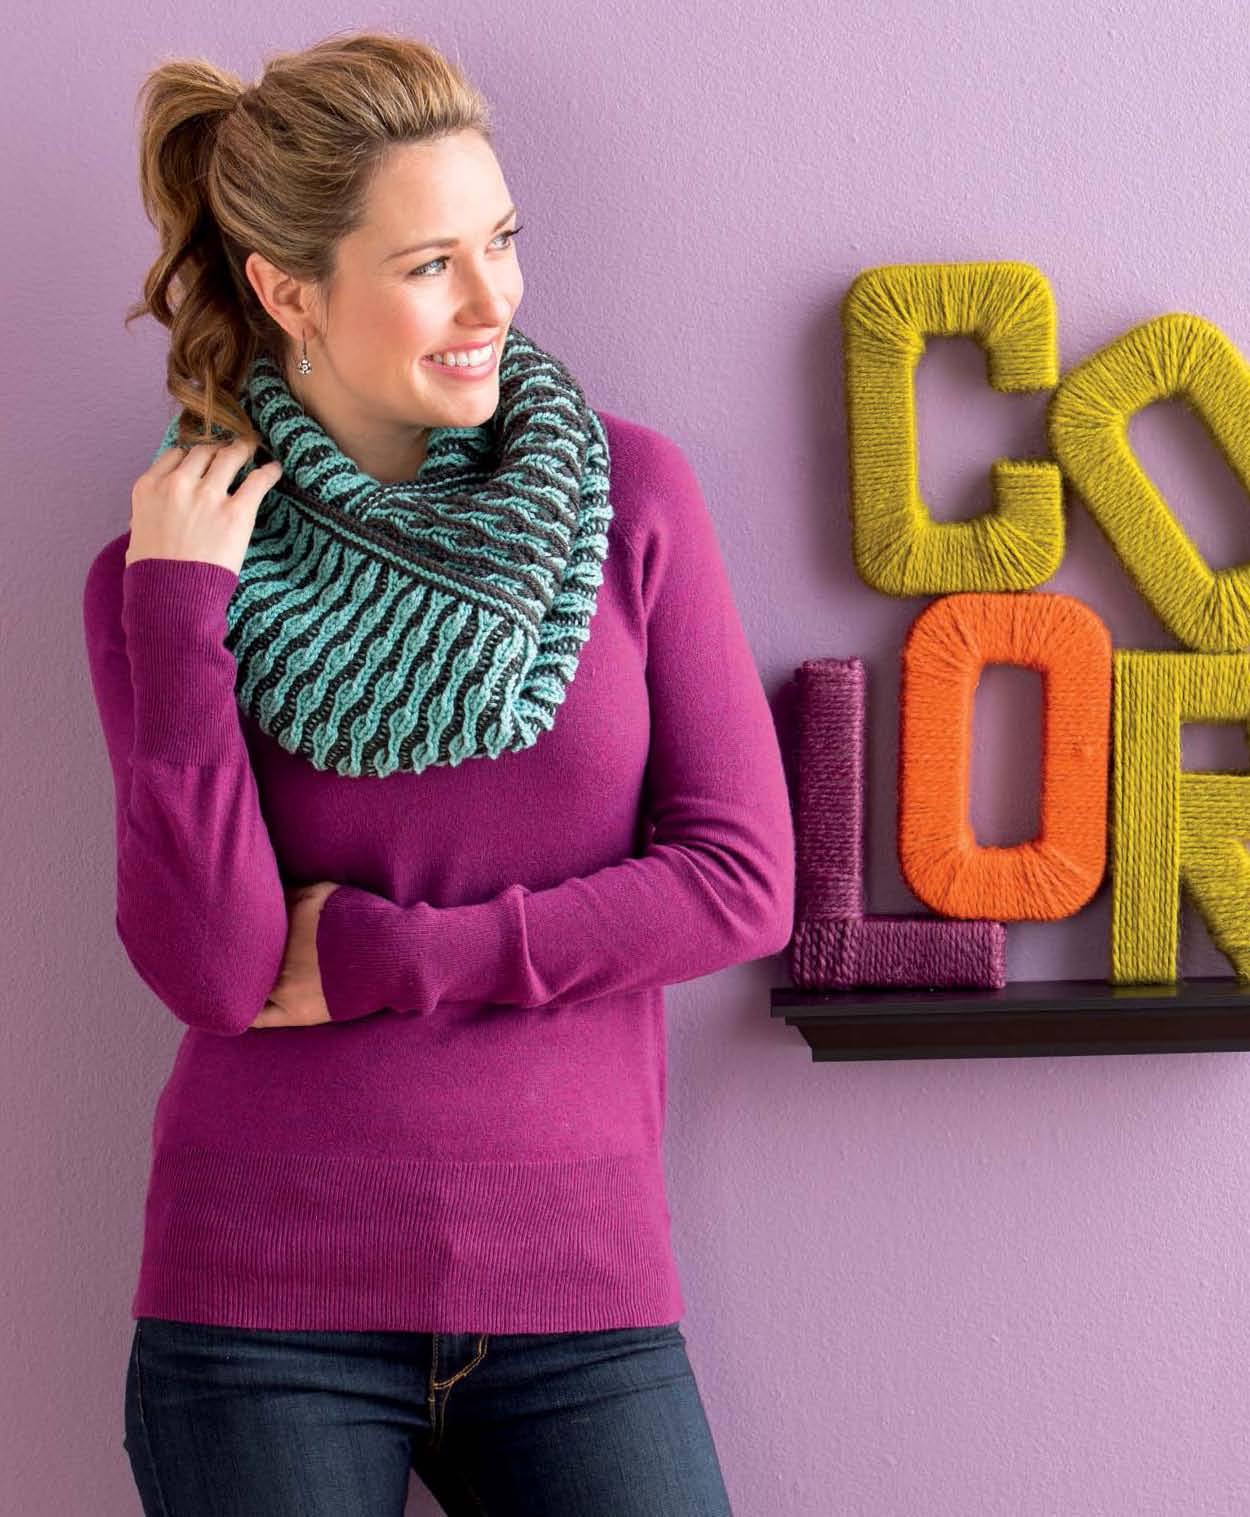 Reversible Infinity Scarf  knitting pattern by Mercedes Tarasovich-Clark,  Brioche Chic